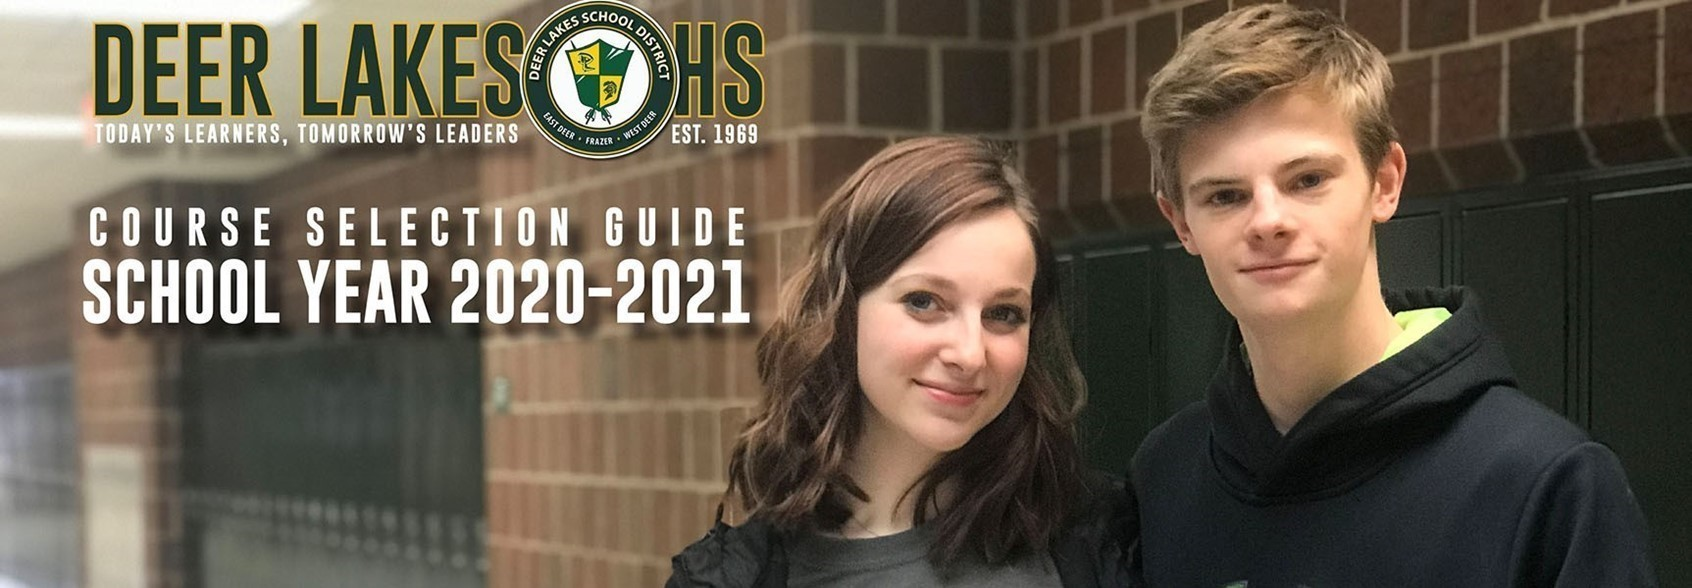 2020-2021 Deer Lakes High School Course Selection Guide Selection Night: March 11